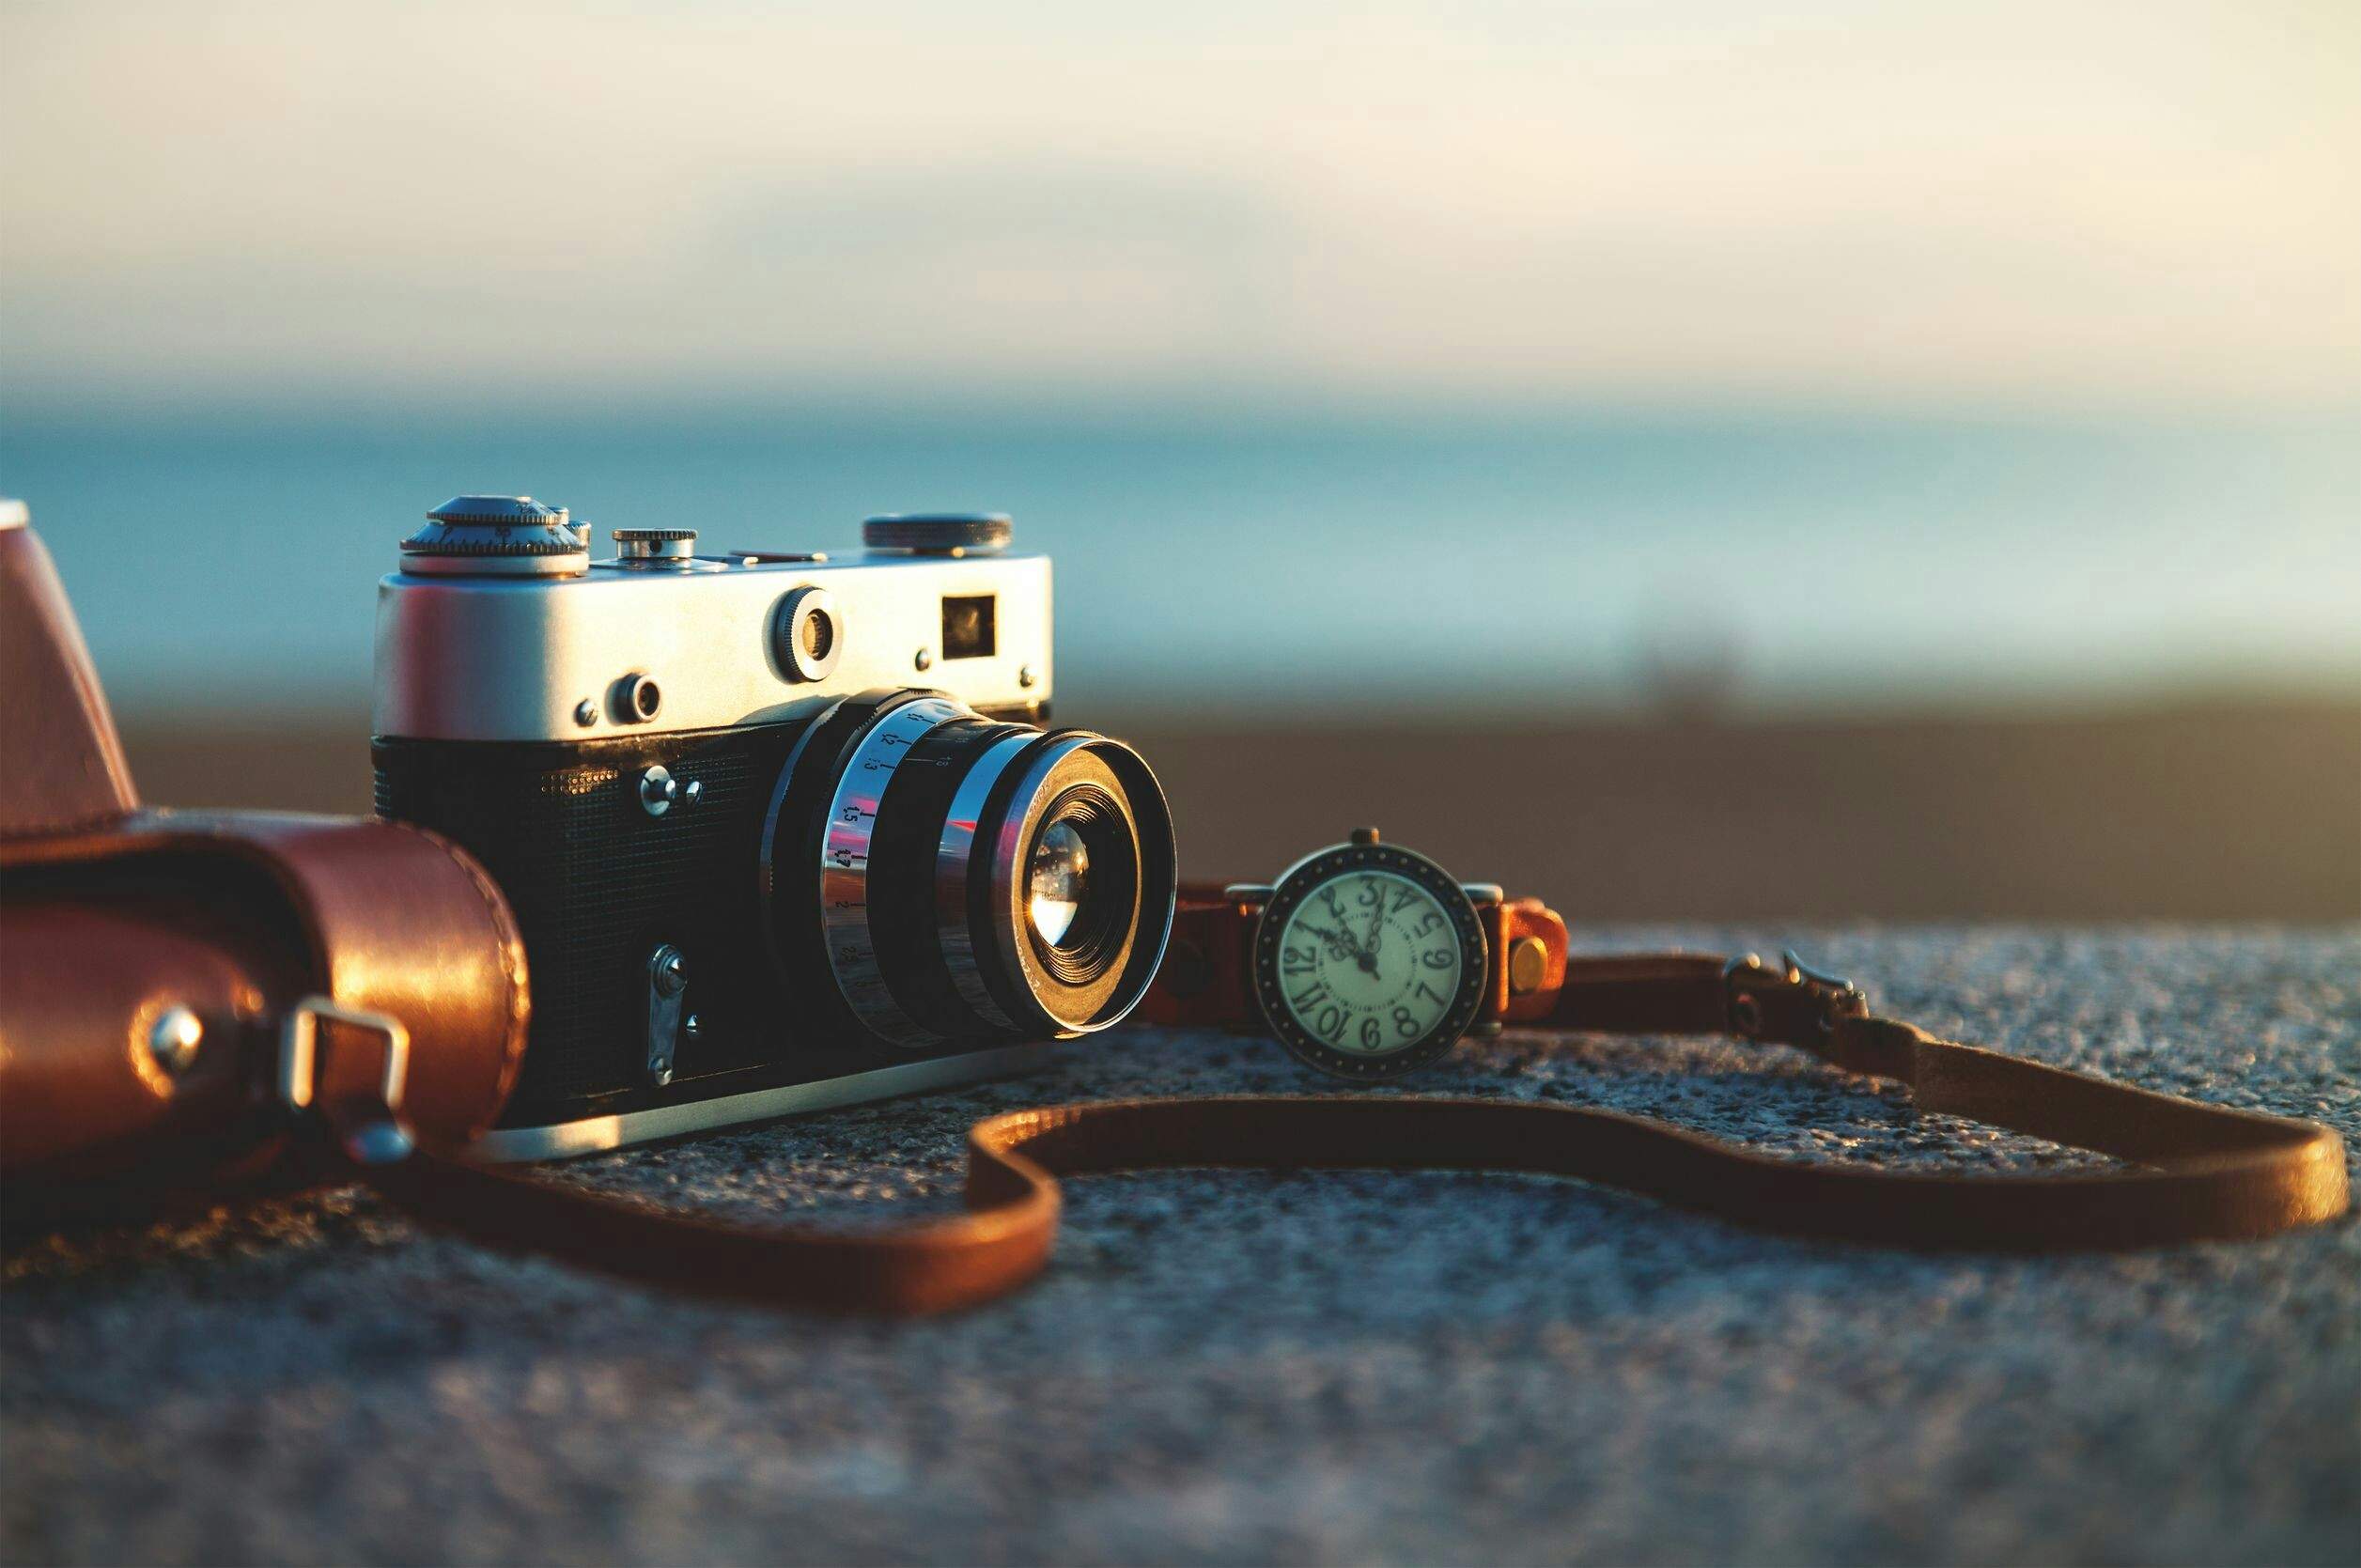 A photo of a close-up of a camera on a rock.